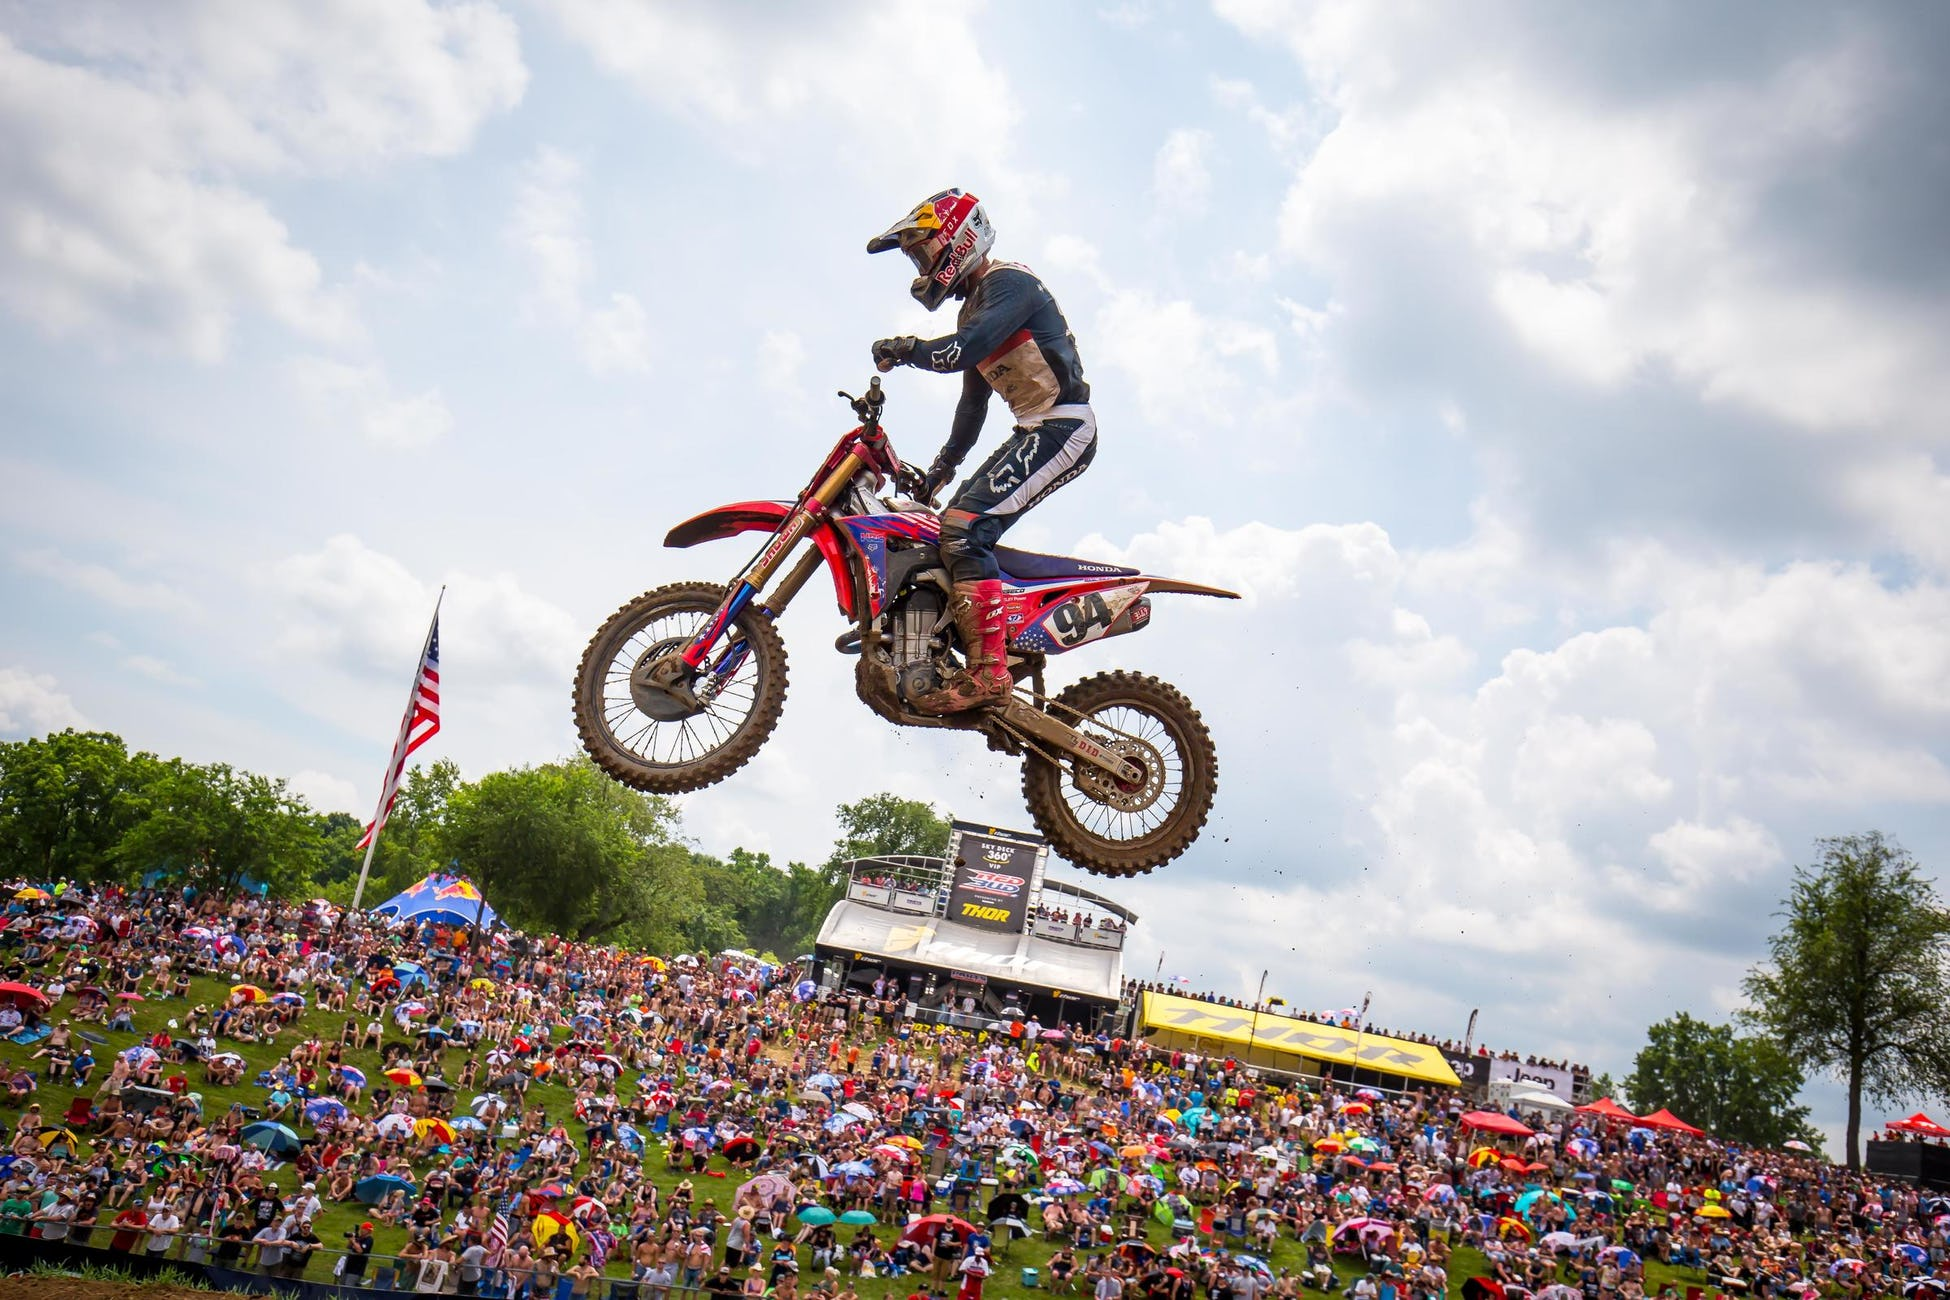 Roczen finished on the podium in moto two and remains third in the championship.